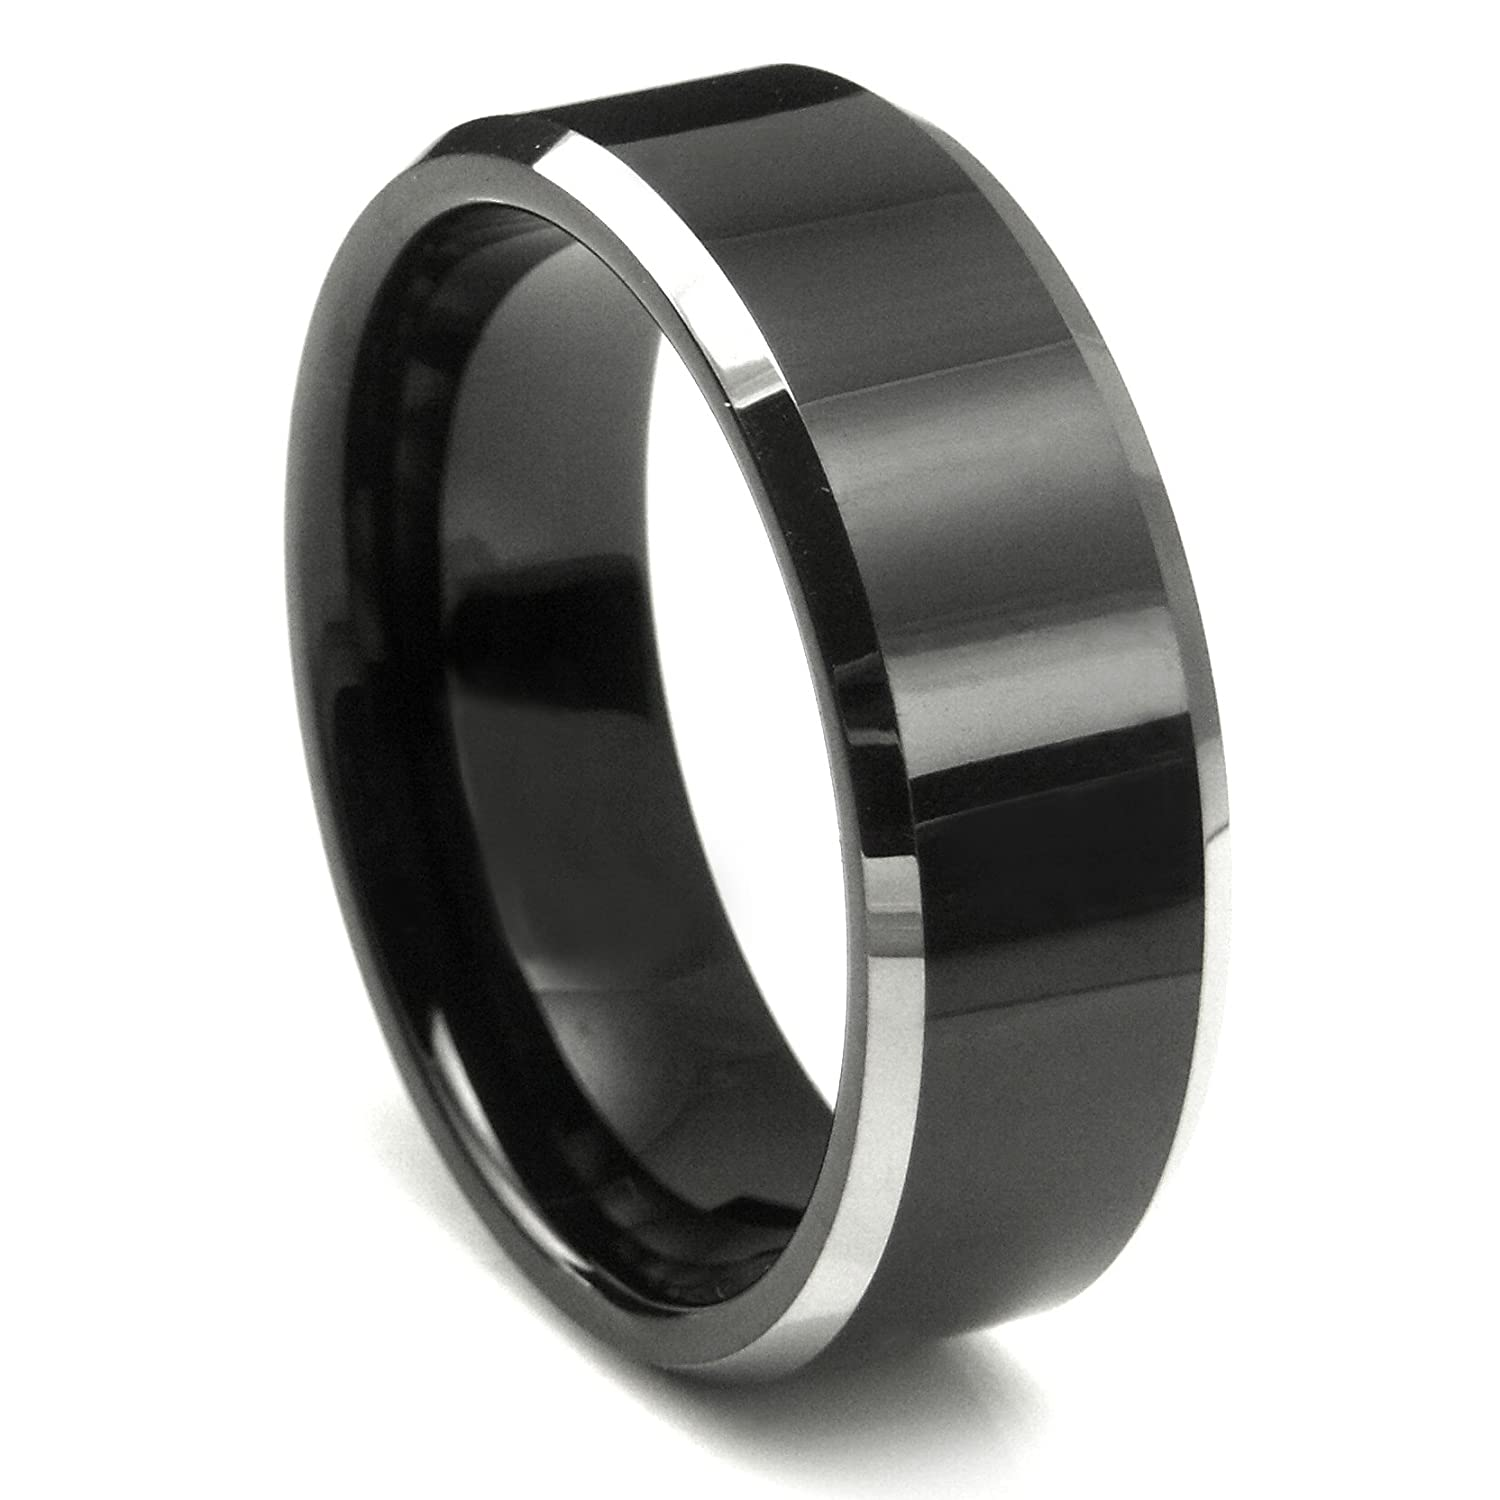 titanium rings fiber dp s band men edges black ring com amazon beveled carbon inlay and mens wedding